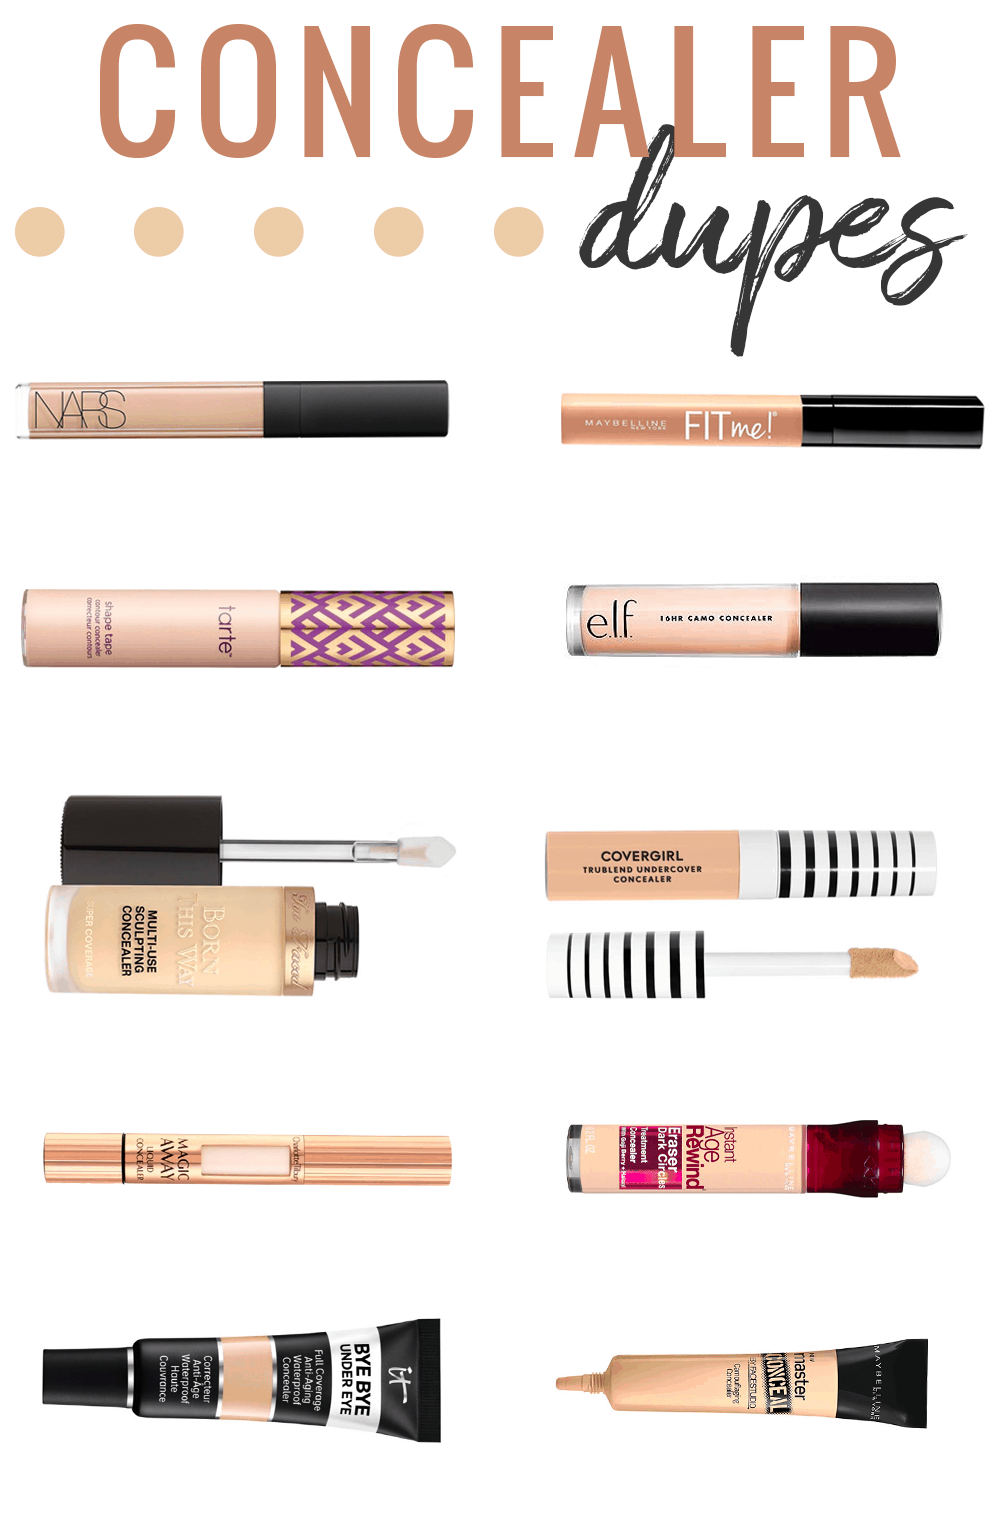 Houston beauty blogger Meg O. shares five drugstore concealer dupes - nars dupe, shape tape dupe, born this way dupe, charlotte tilbury dupe, and bye bye under eye dupe!